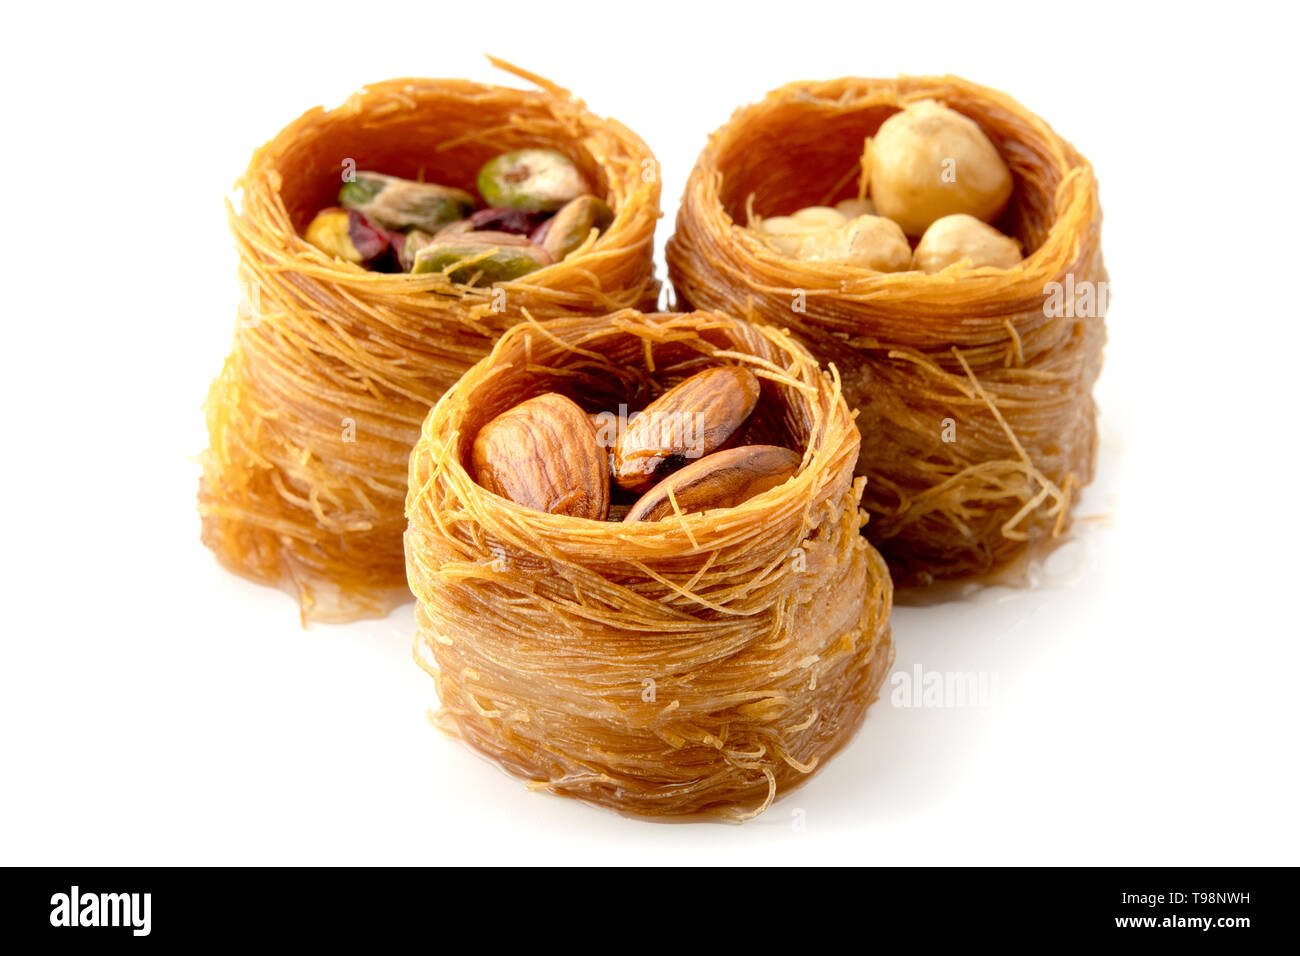 Mixed Bird nest baklava with almonds, nuts and pistachios on a white background - Stock Image